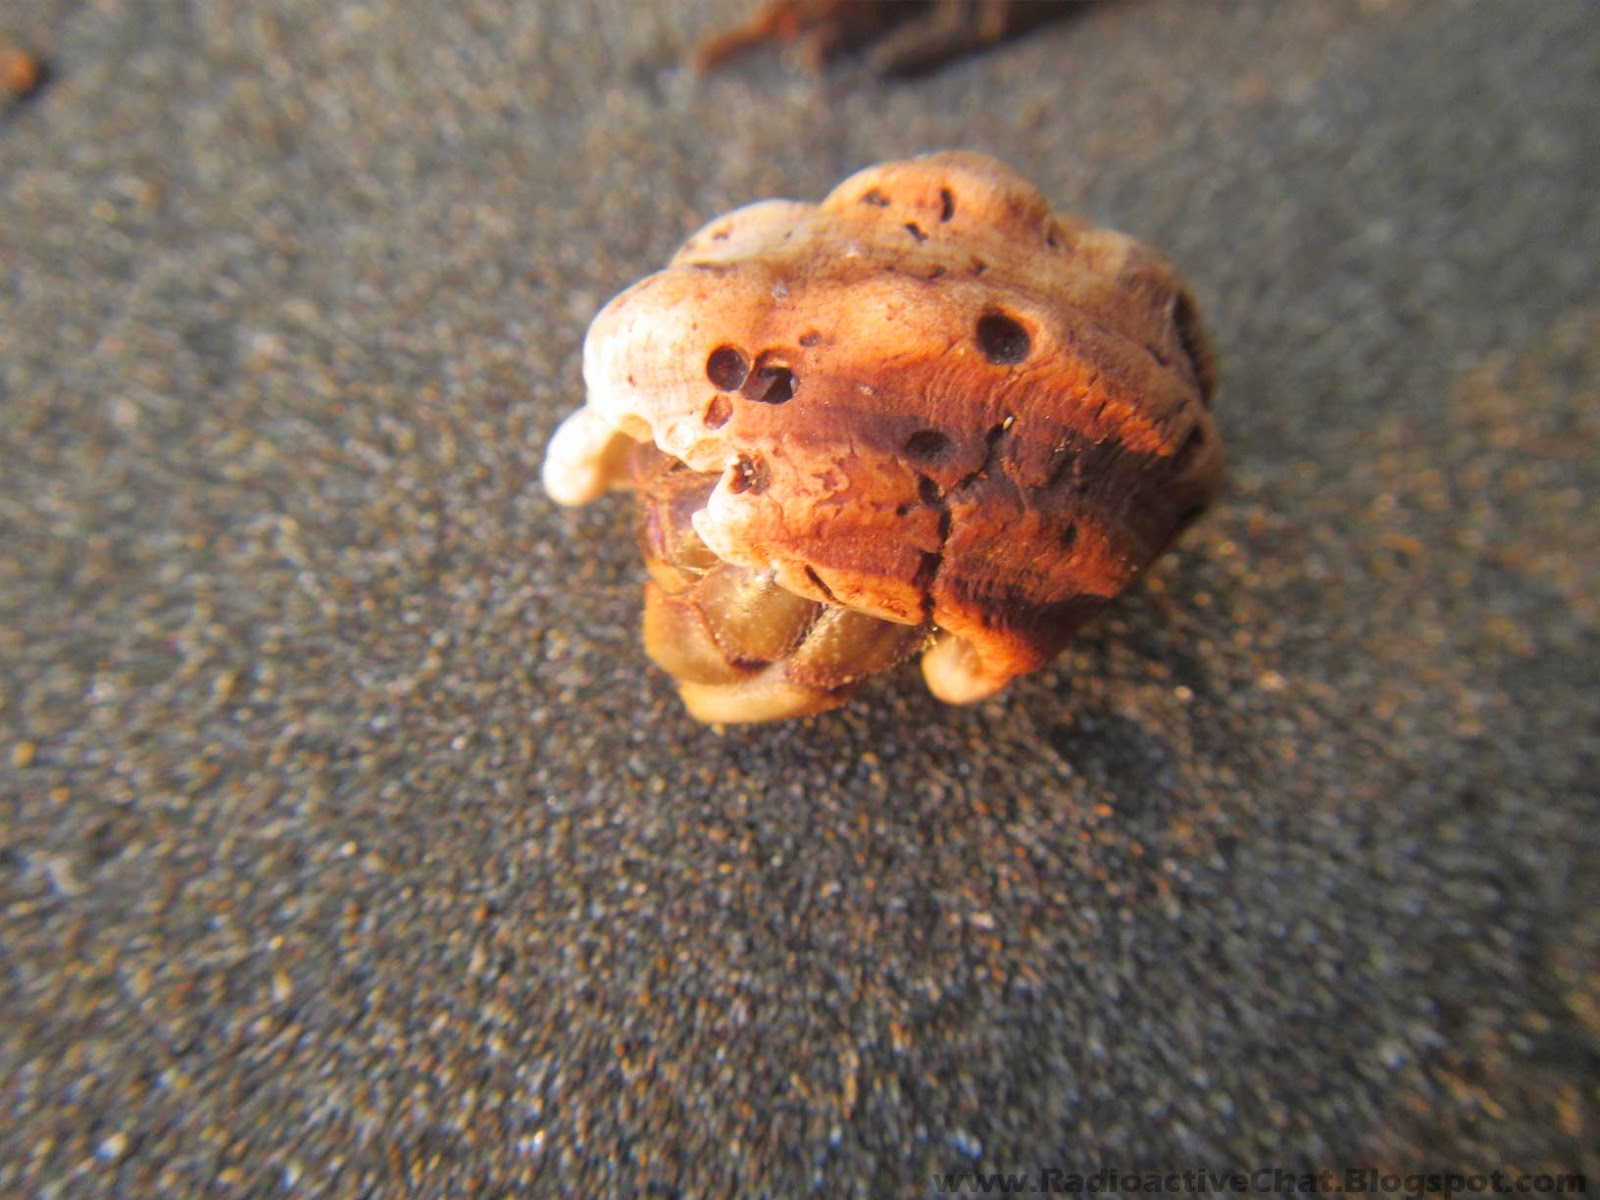 Costa Rica Pacific Coast Mutated Coenobita Clypeatus Hermit Crabs Photo 4